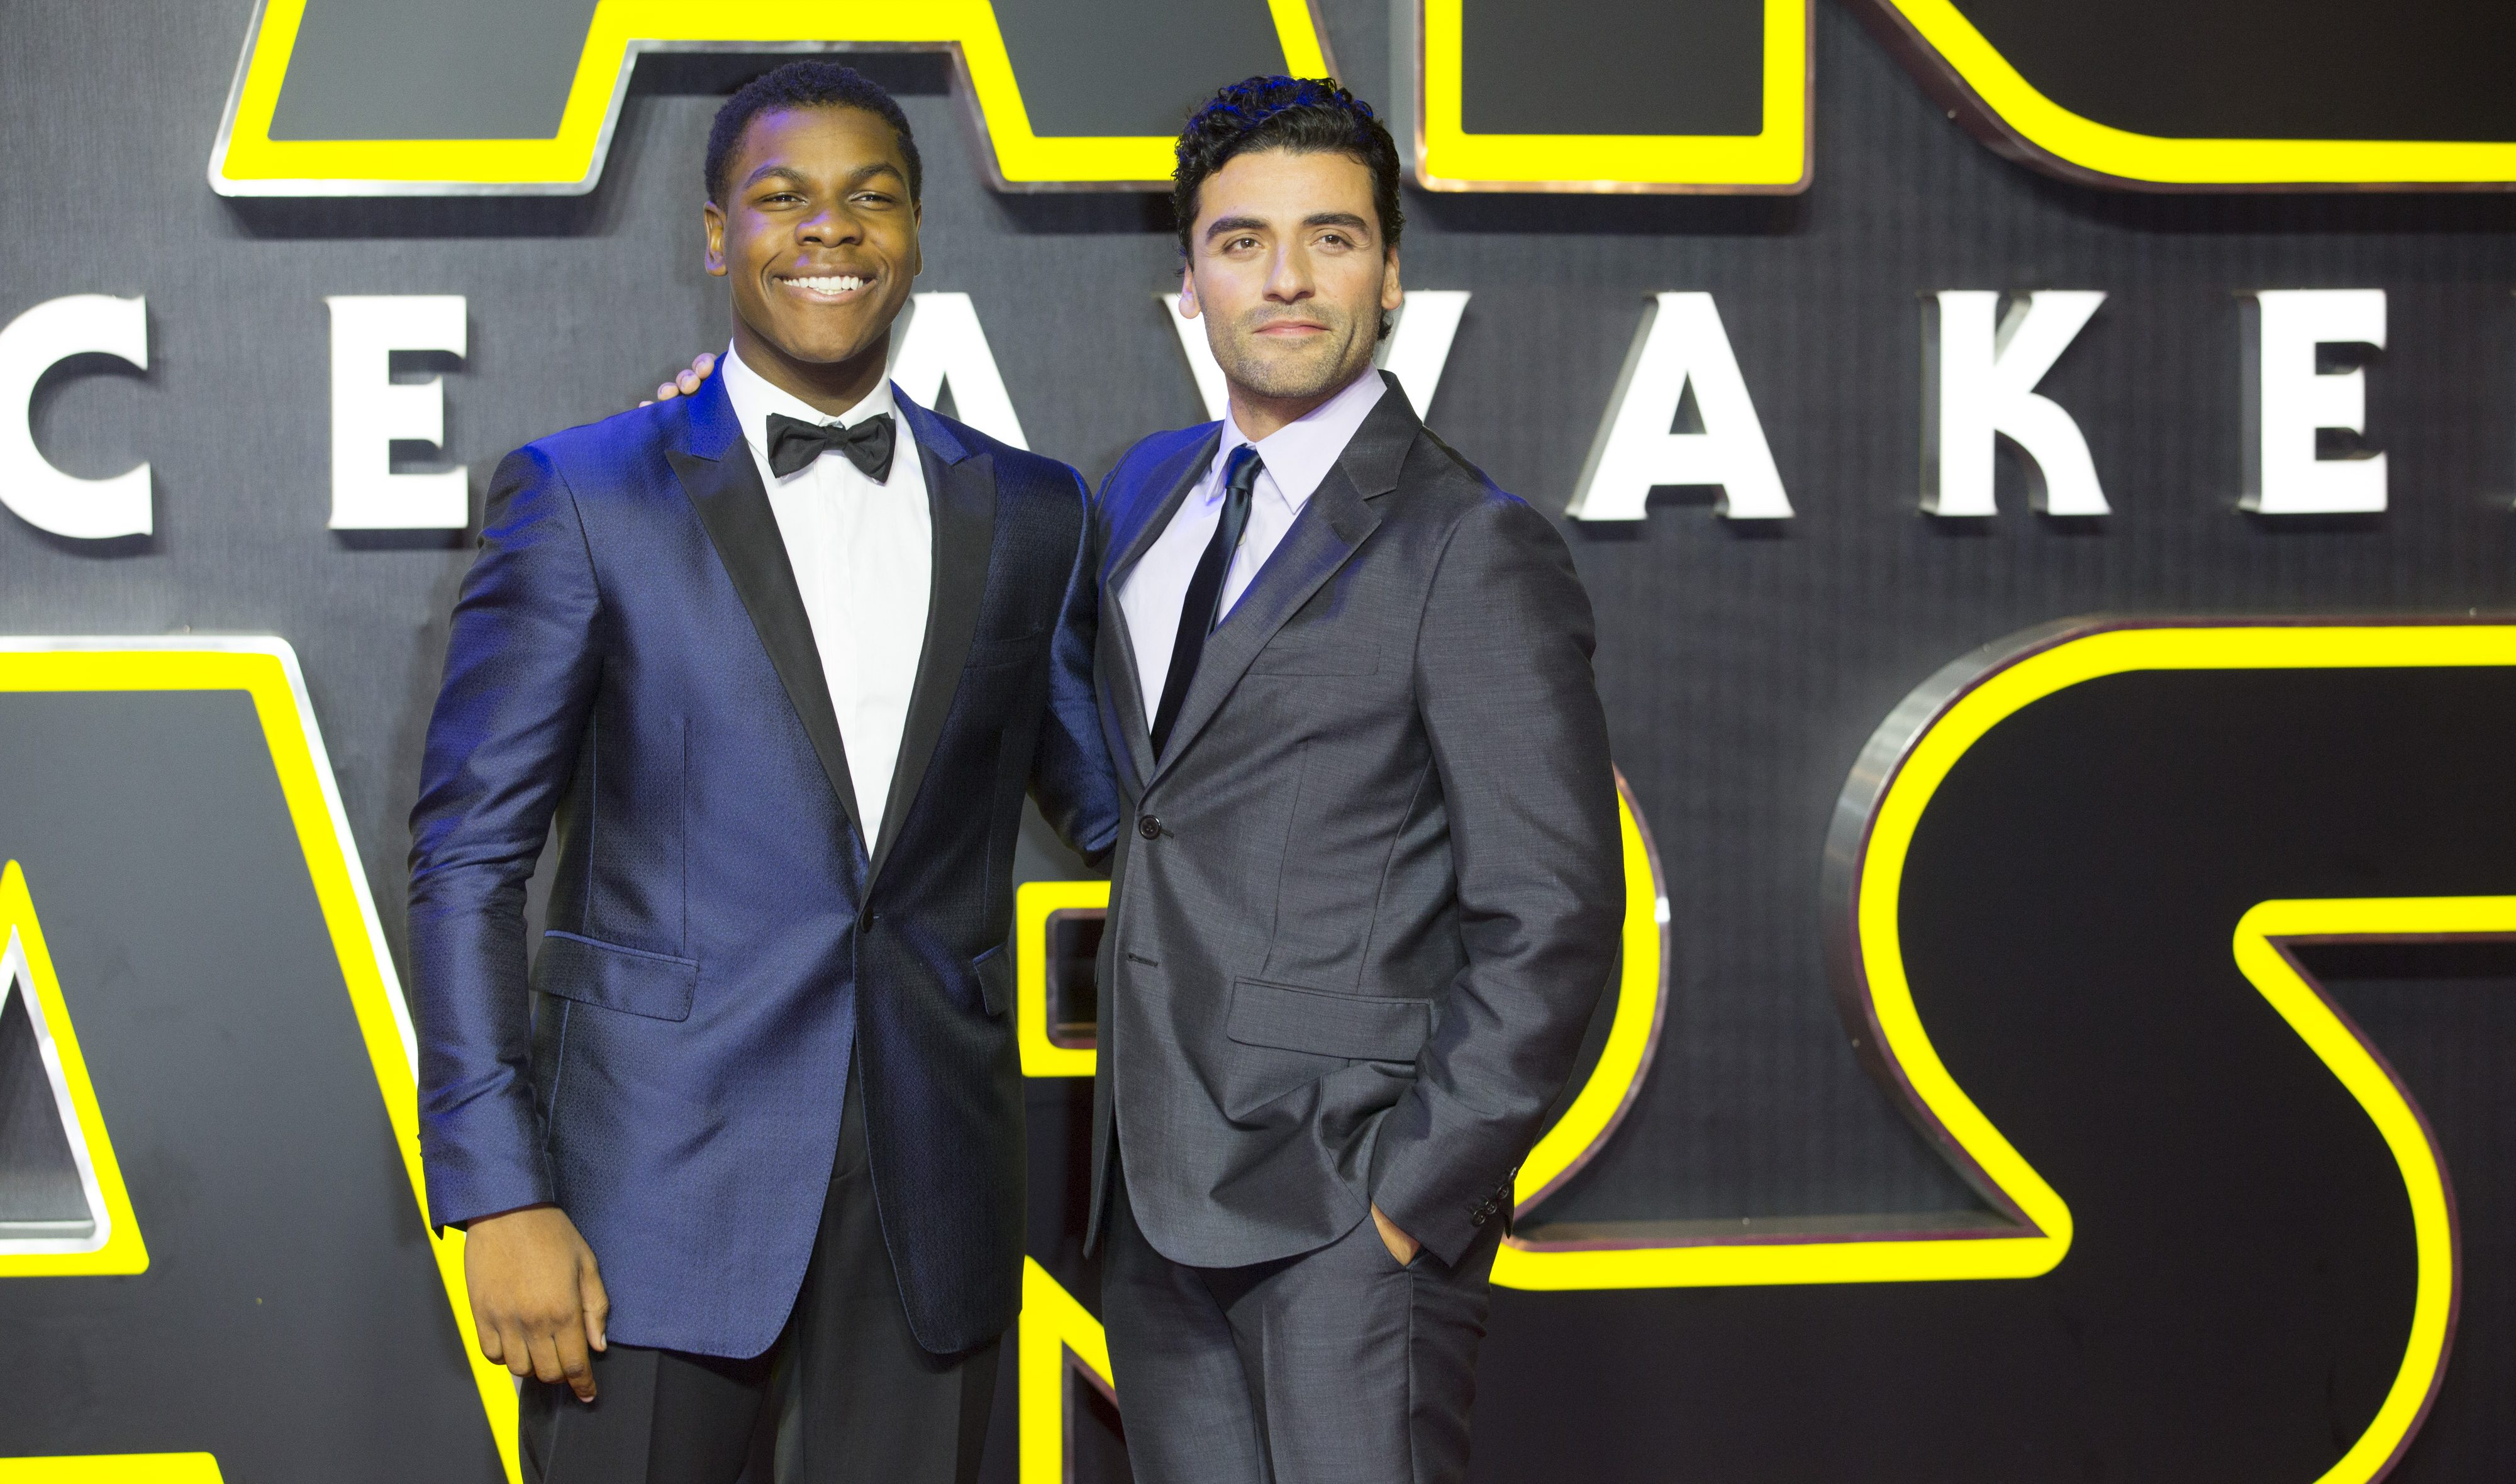 LONDON, UK – DECEMBER 16: Actors John Boyega and Oscar Isaac attend the European Premiere of the highly anticipated Star Wars: The Force Awakens in London on December 16, 2015.